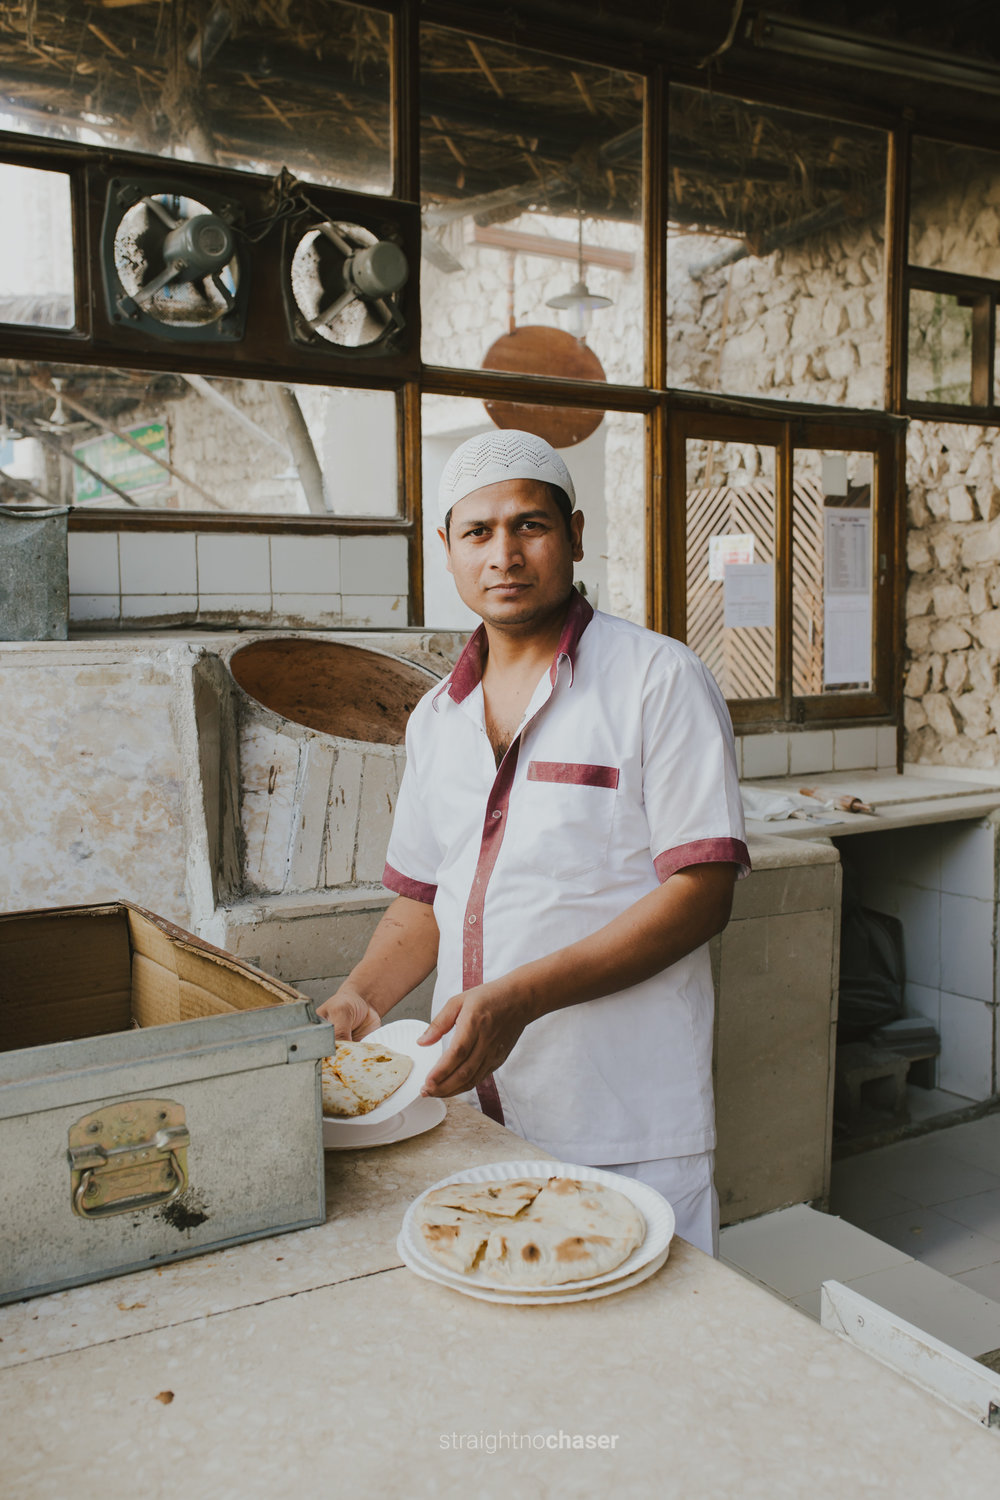 Bread shop: Street Food in Souq Waqif Doha, Qatar